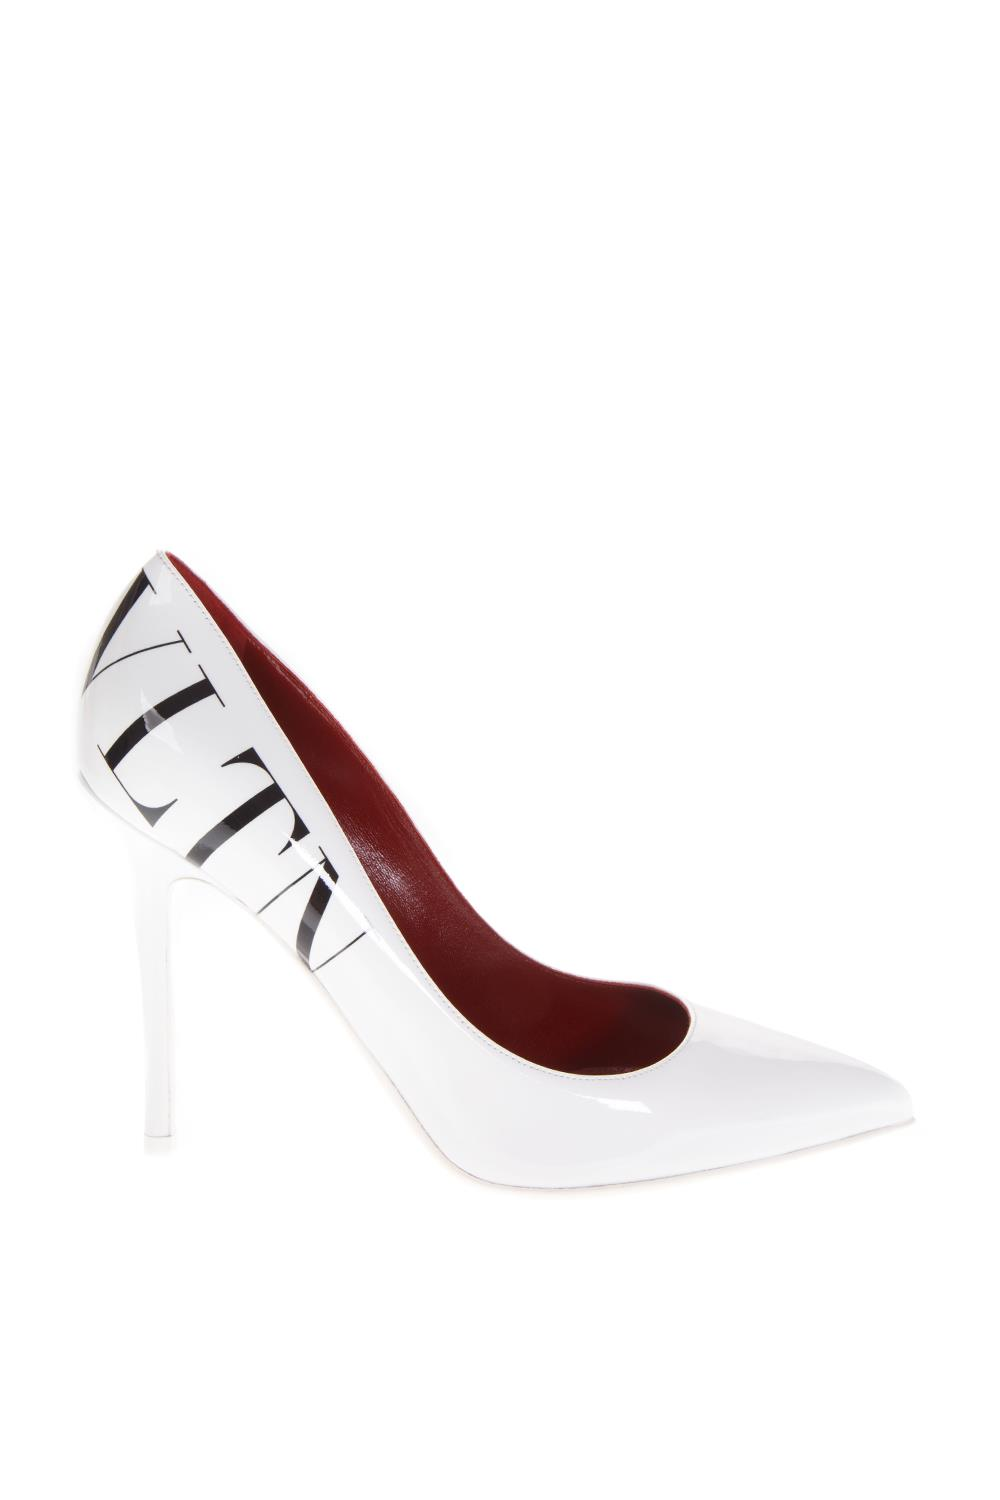 eb0163904ade WHITE LEATHER PUMPS WITH VLTN LOGO FW 2018 - VALENTINO GARAVANI - Boutique  Galiano